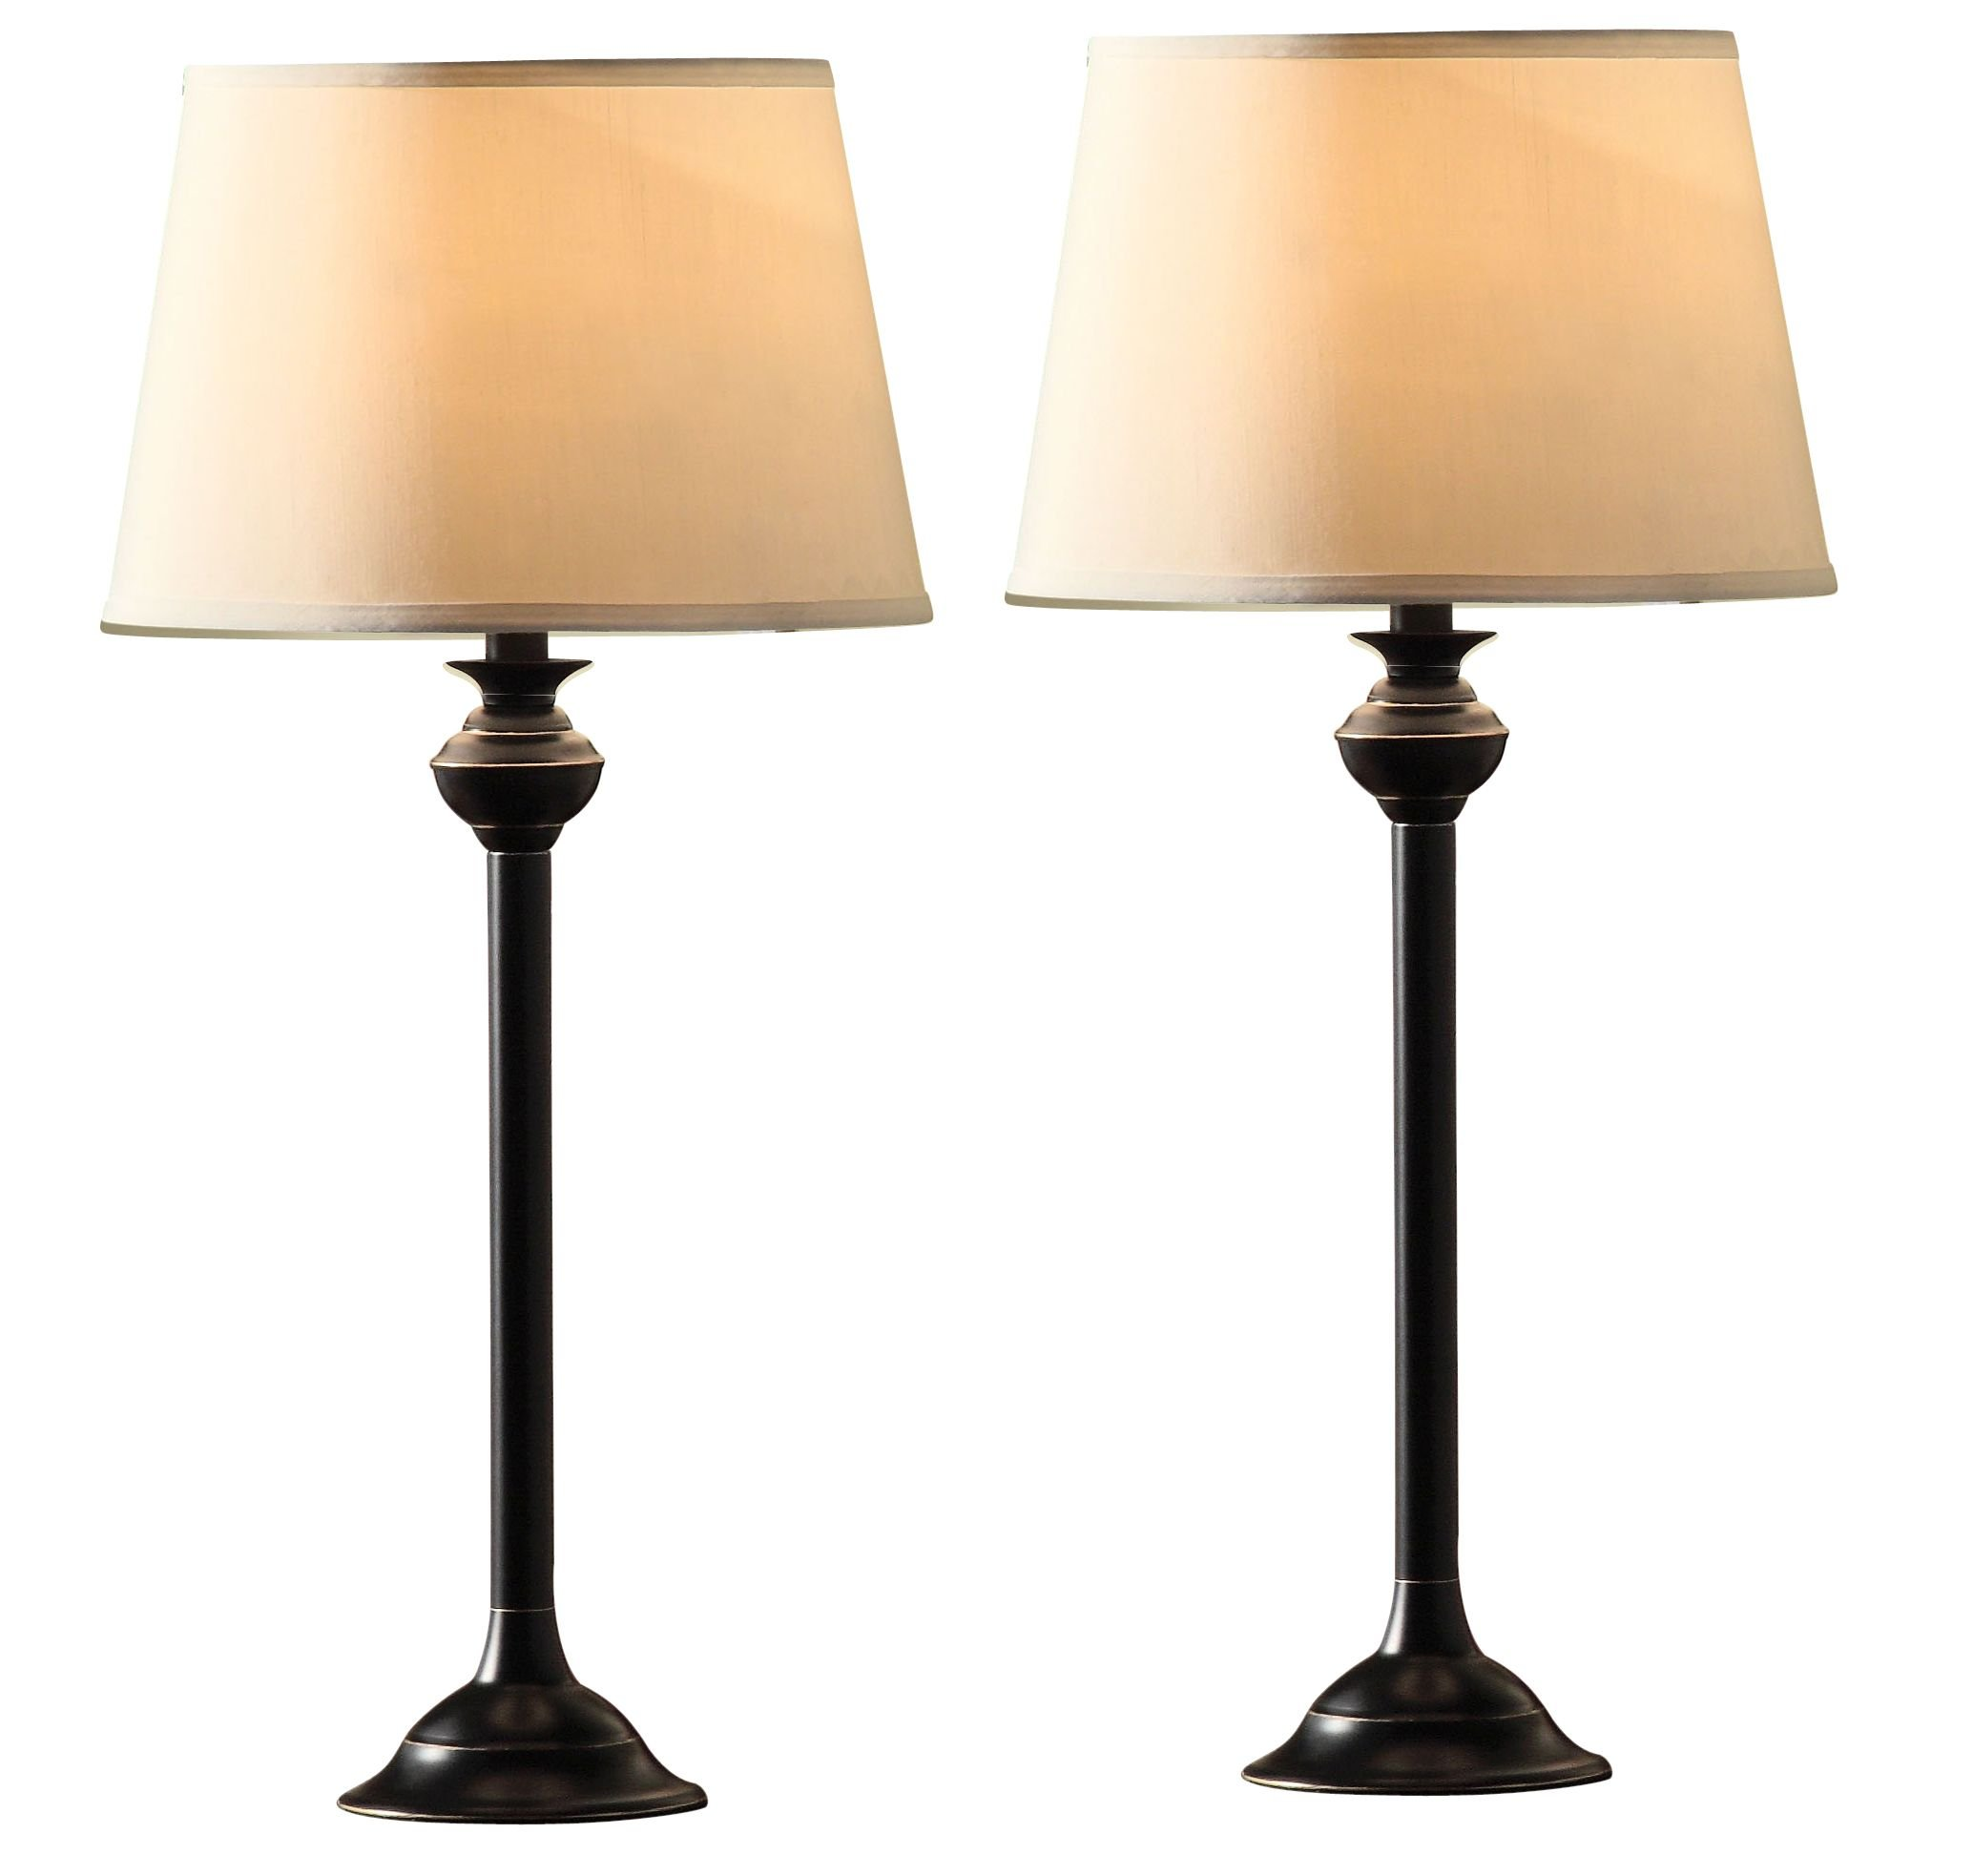 Catalina Lighting 18079-001 Traditional 3-Piece Metal Floor & Table Lamp Set with Linen Shades, Without Bulb, Black Classic by Catalina Lighting (Image #3)